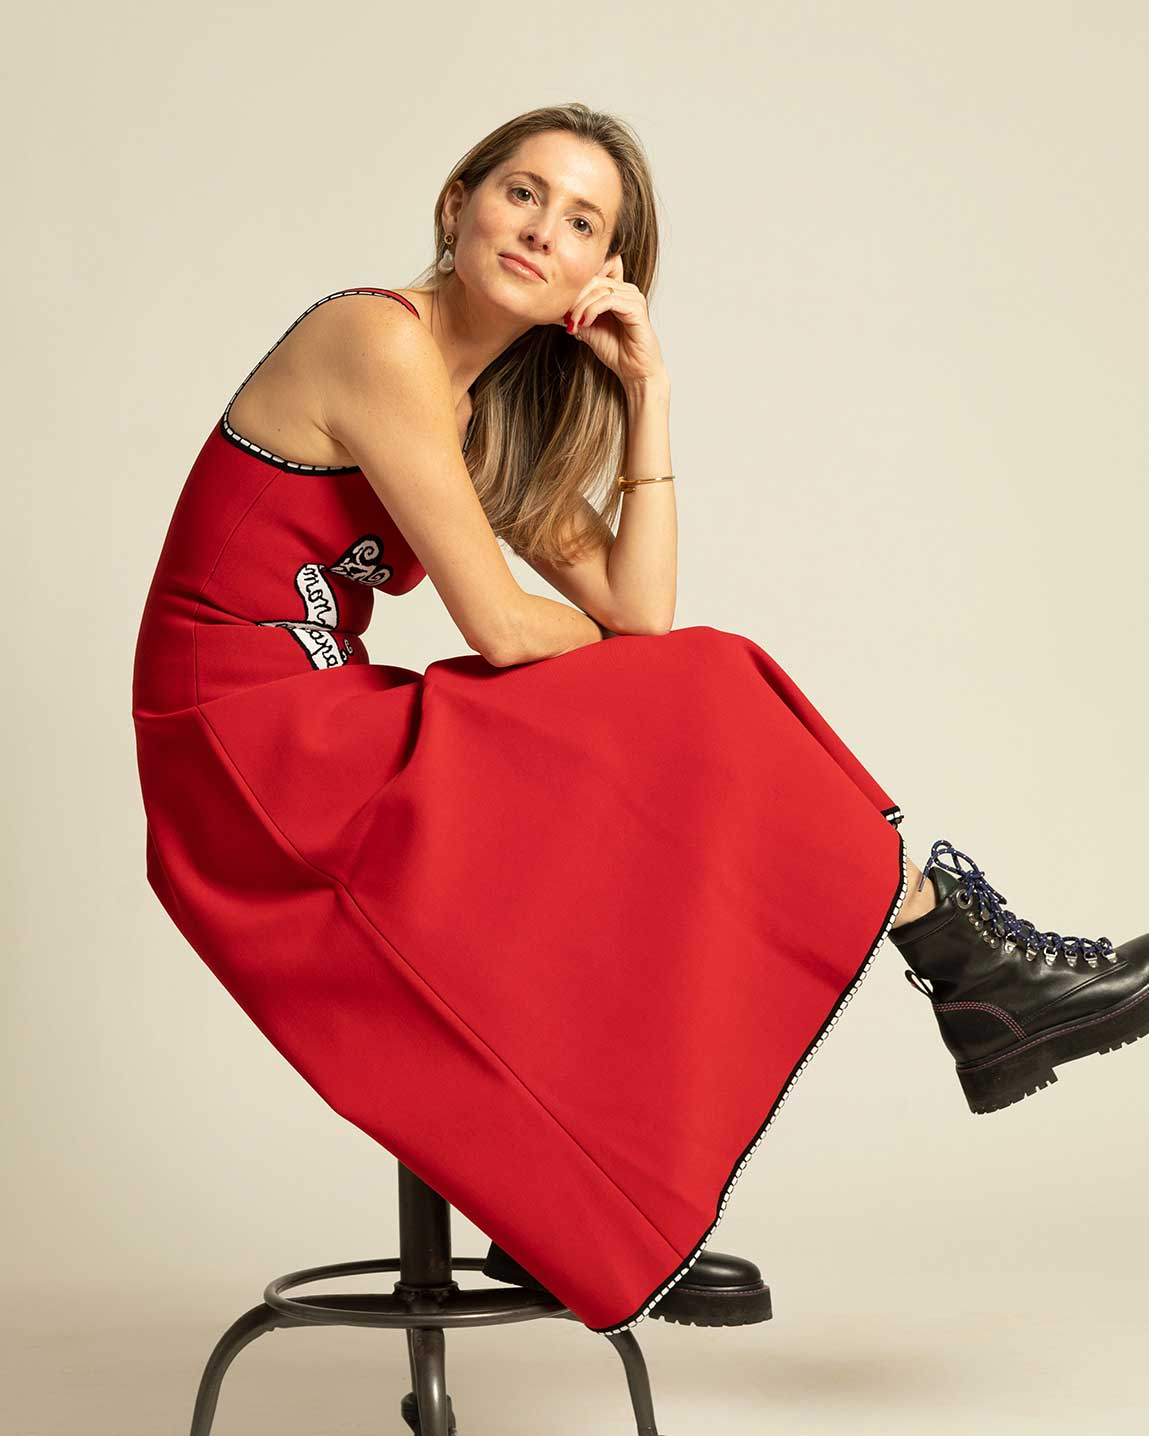 Founder of Larroudé Marina Larroudé sitting on a stool in a red dress and black boots